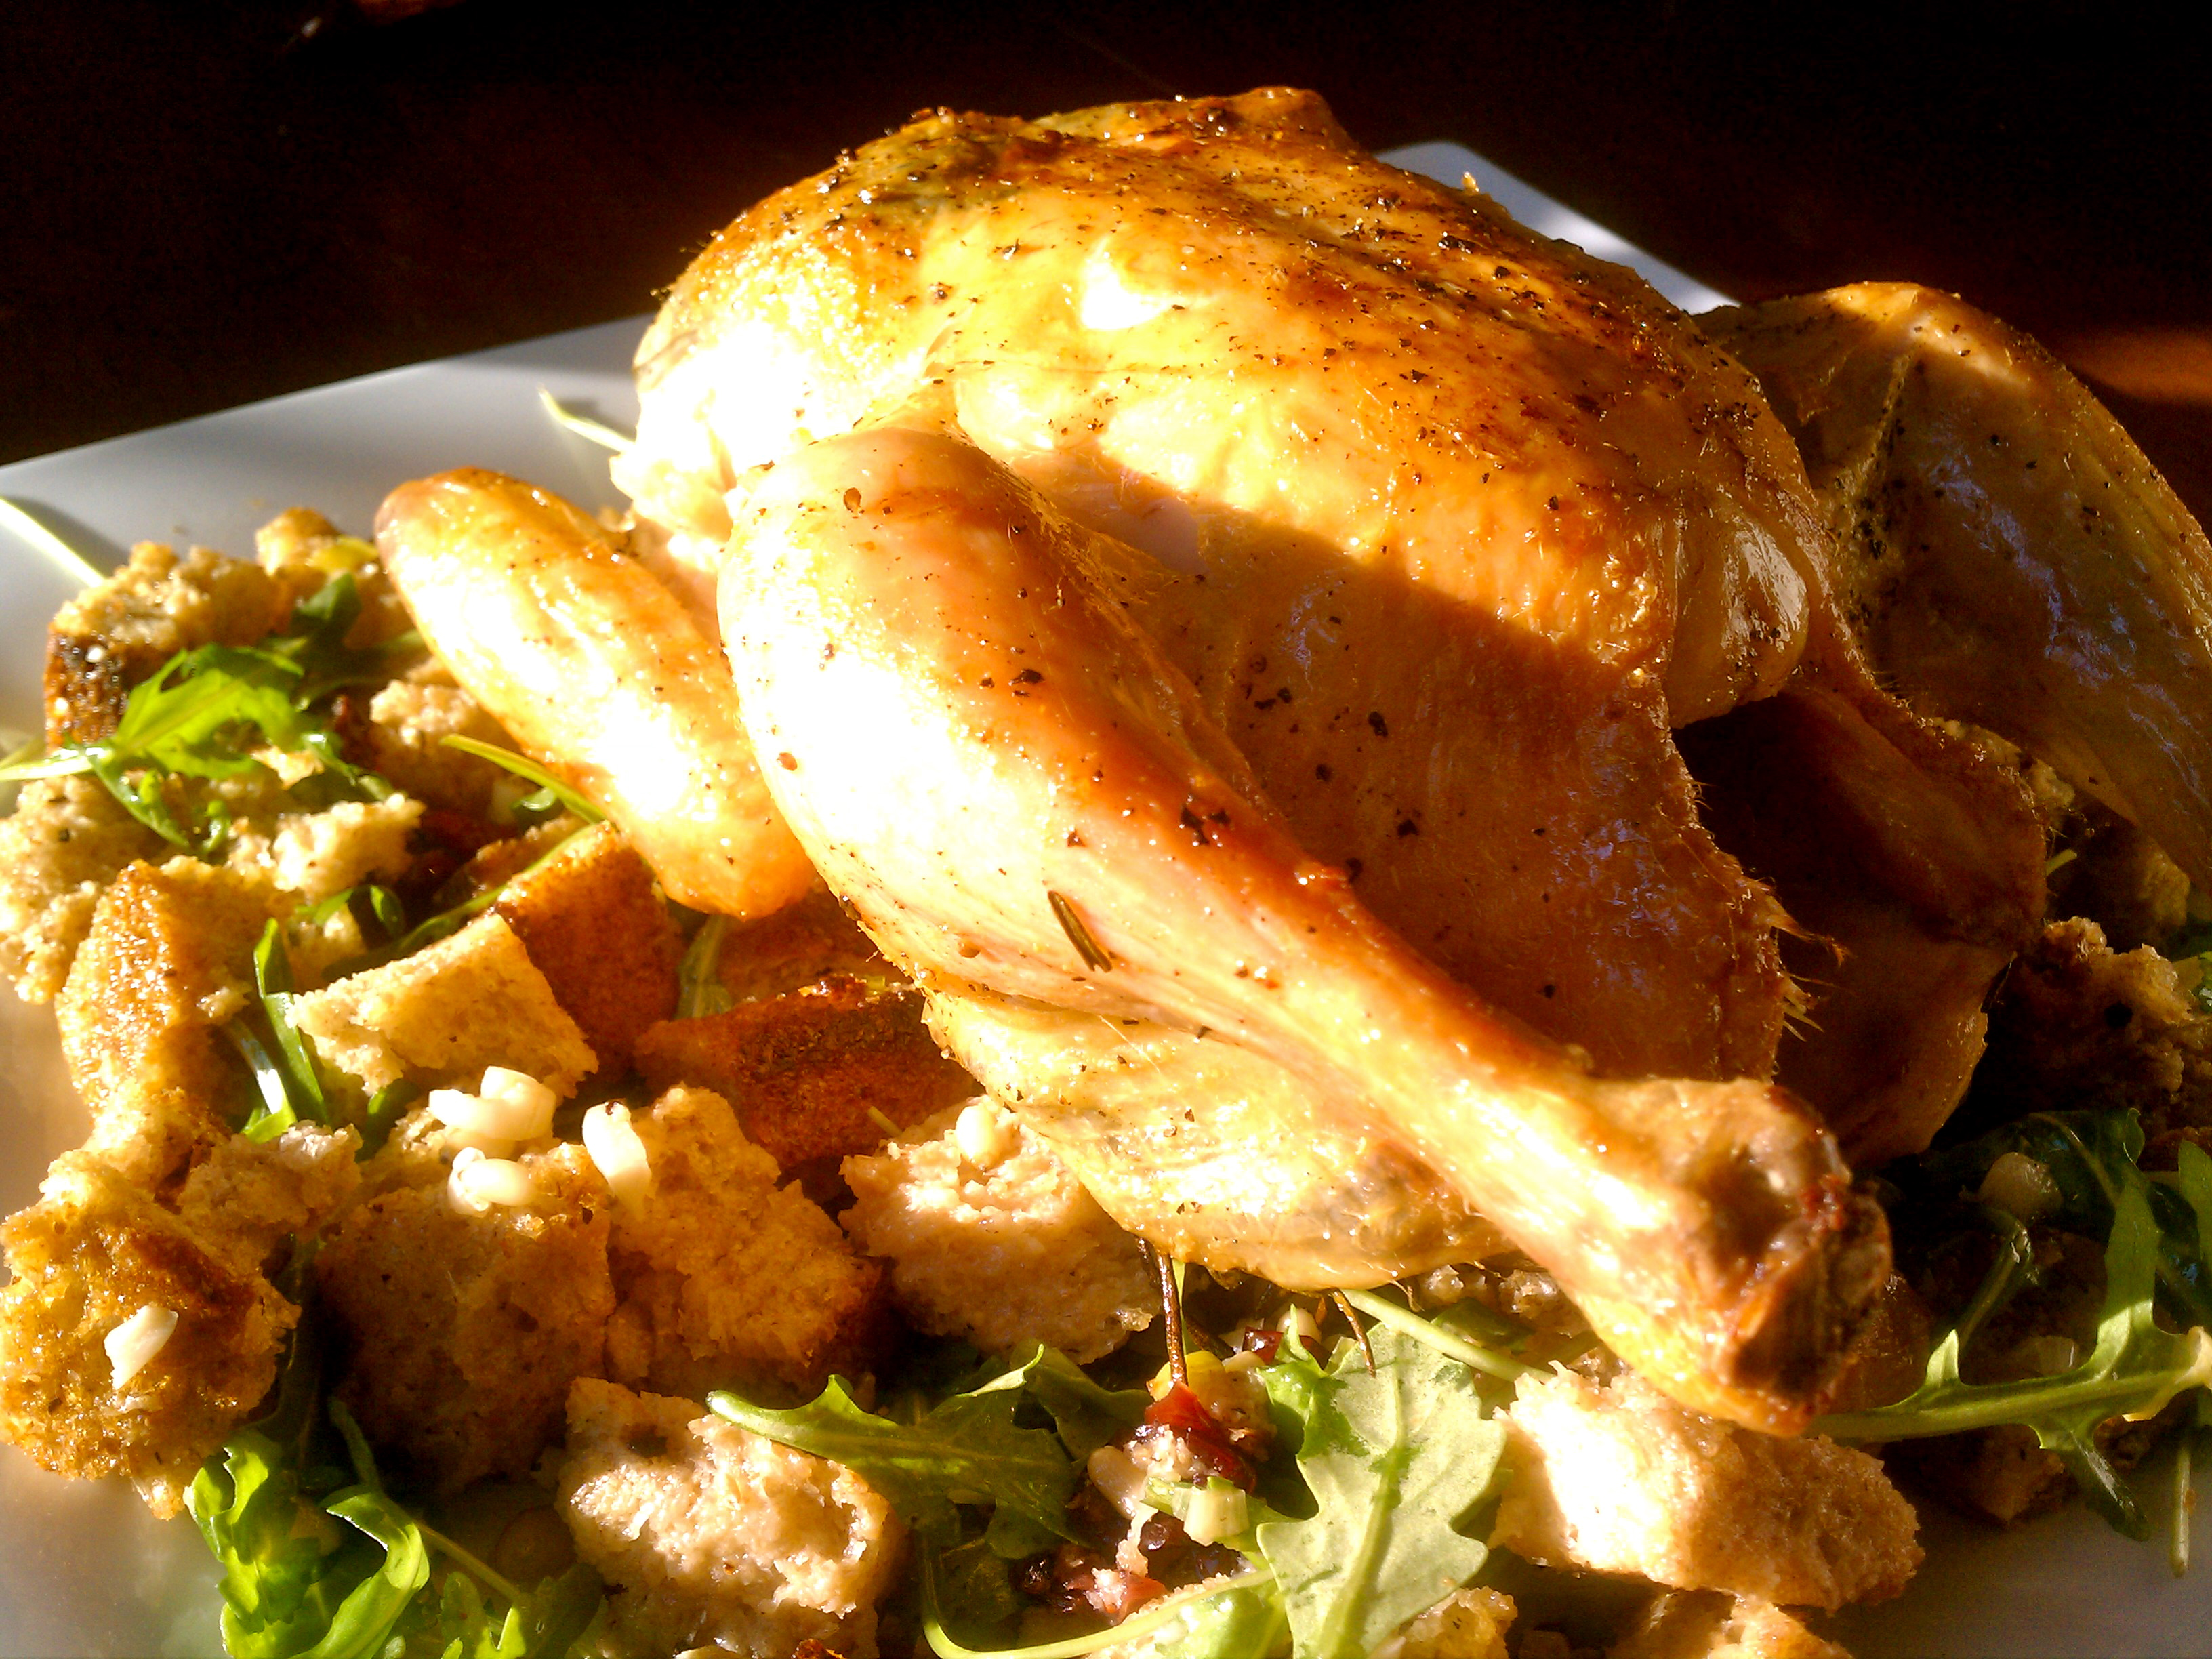 Zuni Cafe's Roasted Chicken and Bread Salad